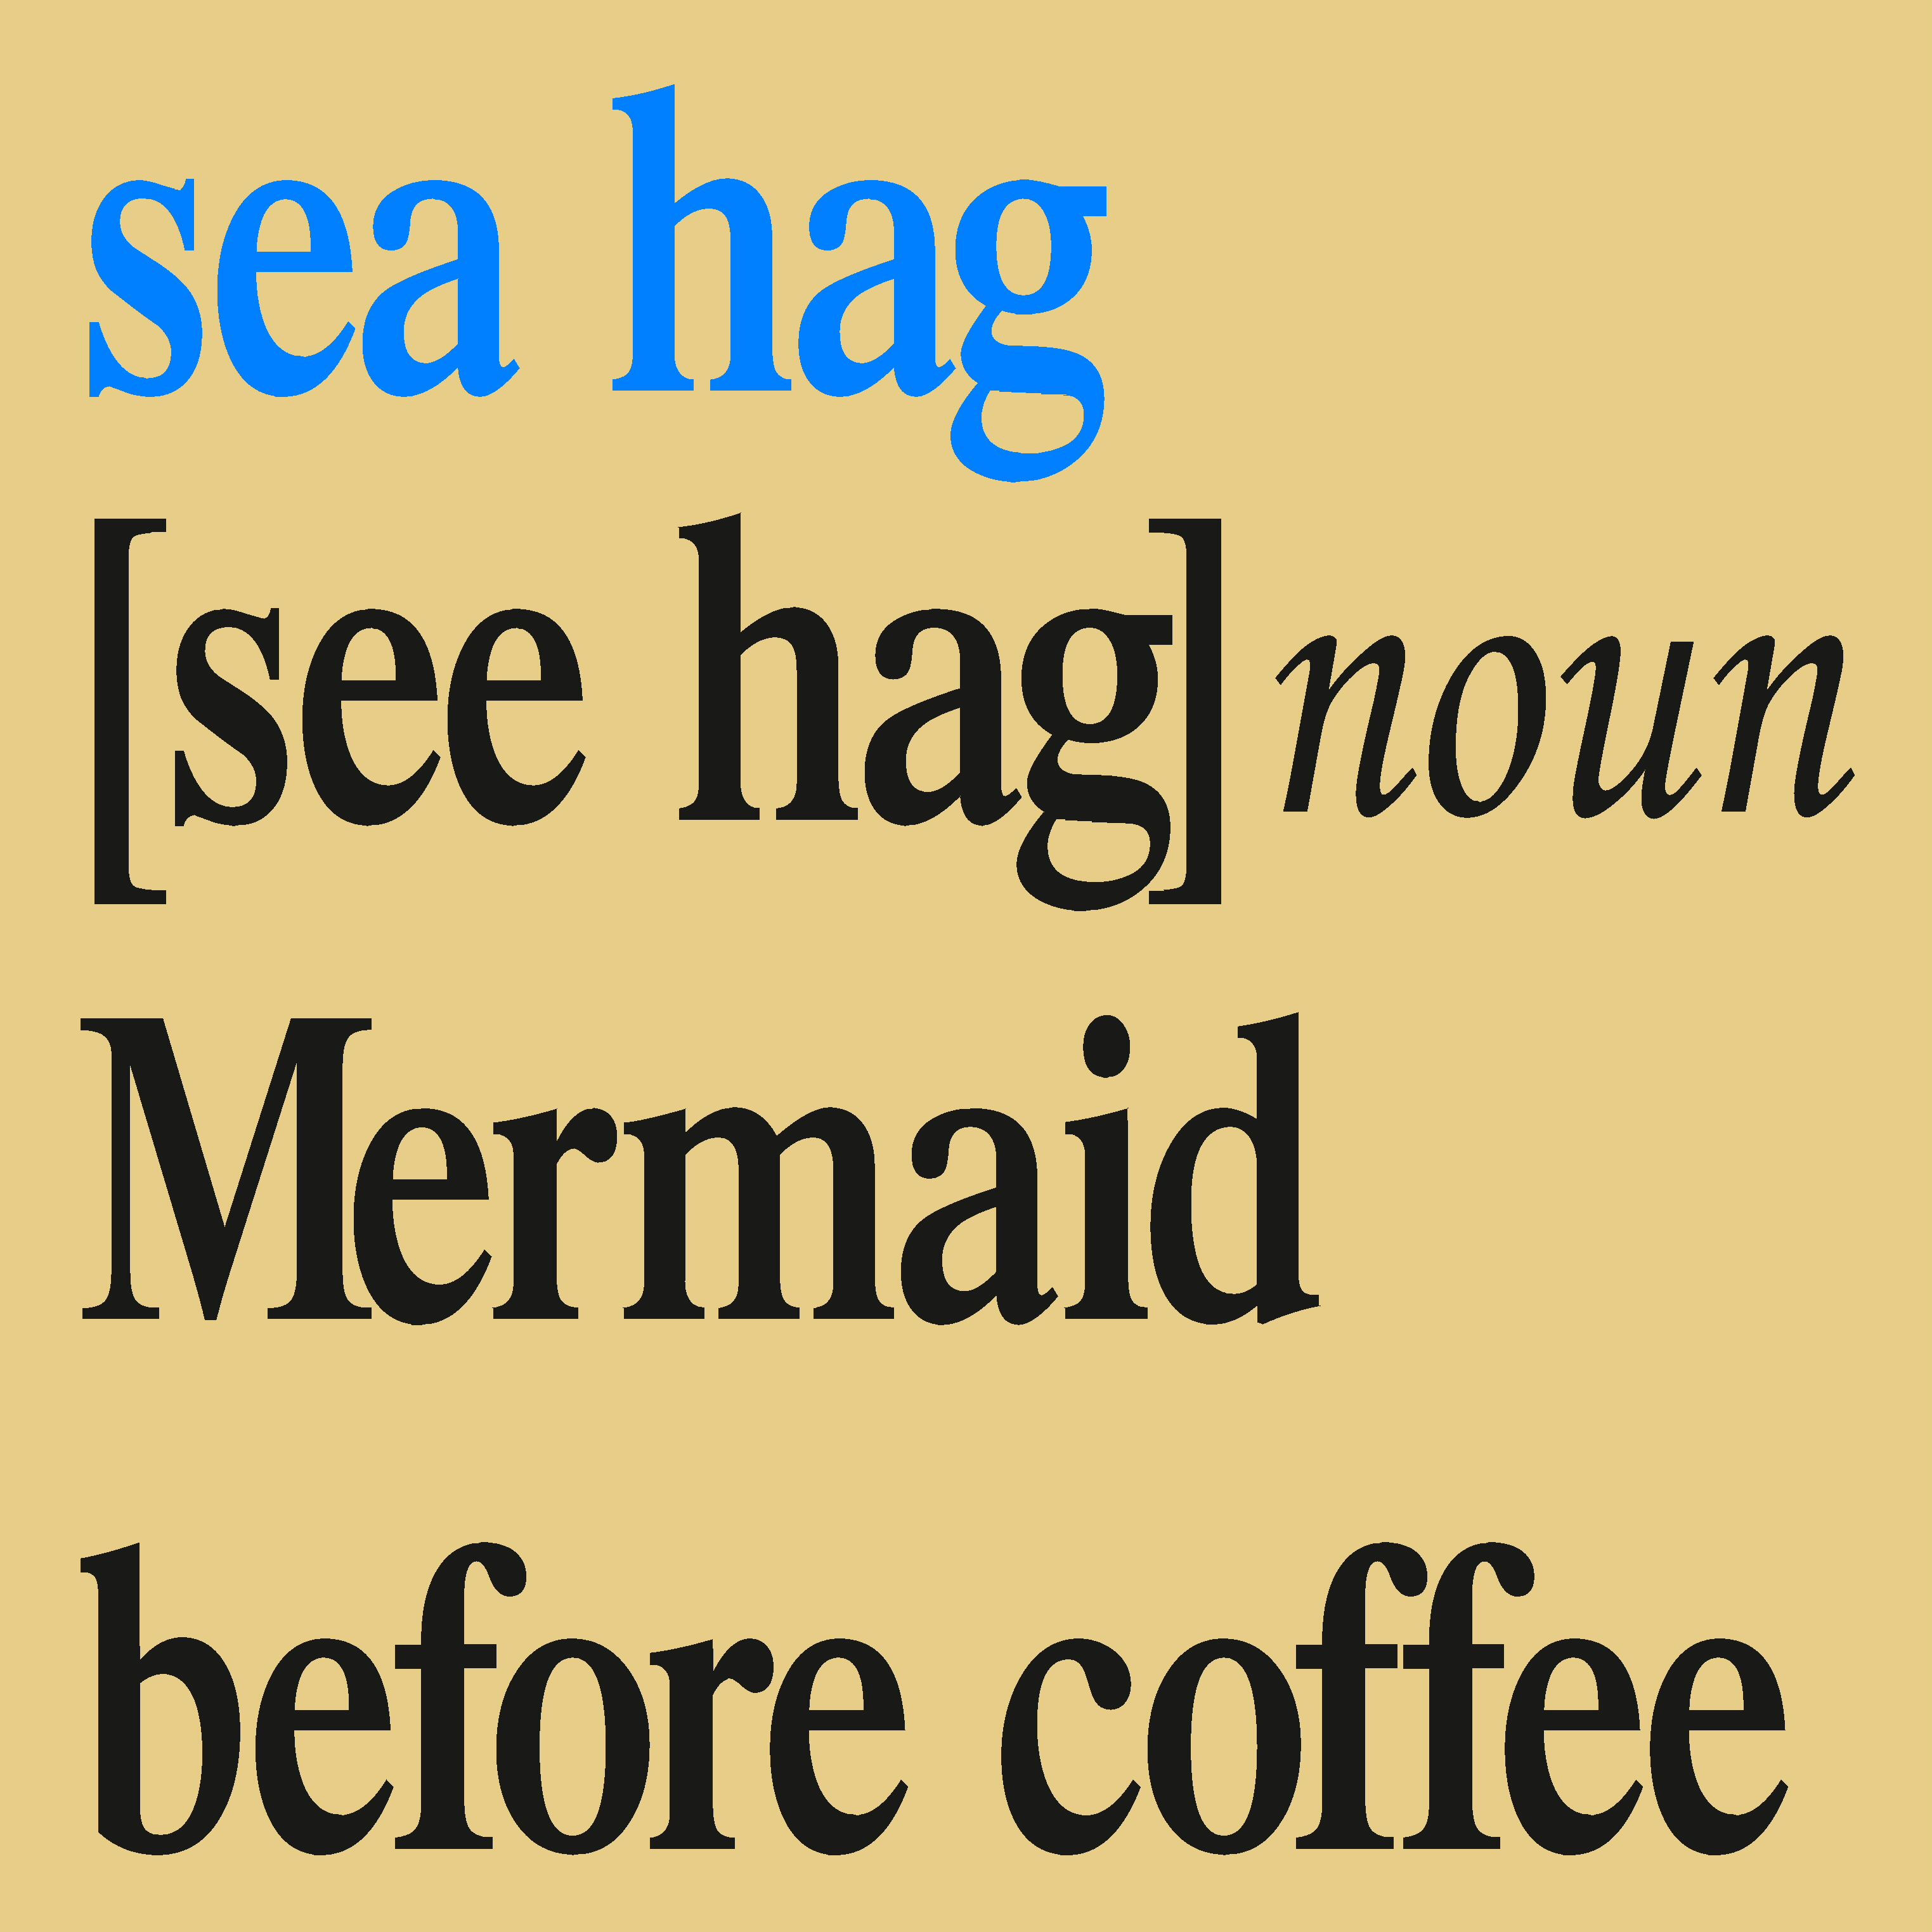 Sea Hag Mermaid before coffee